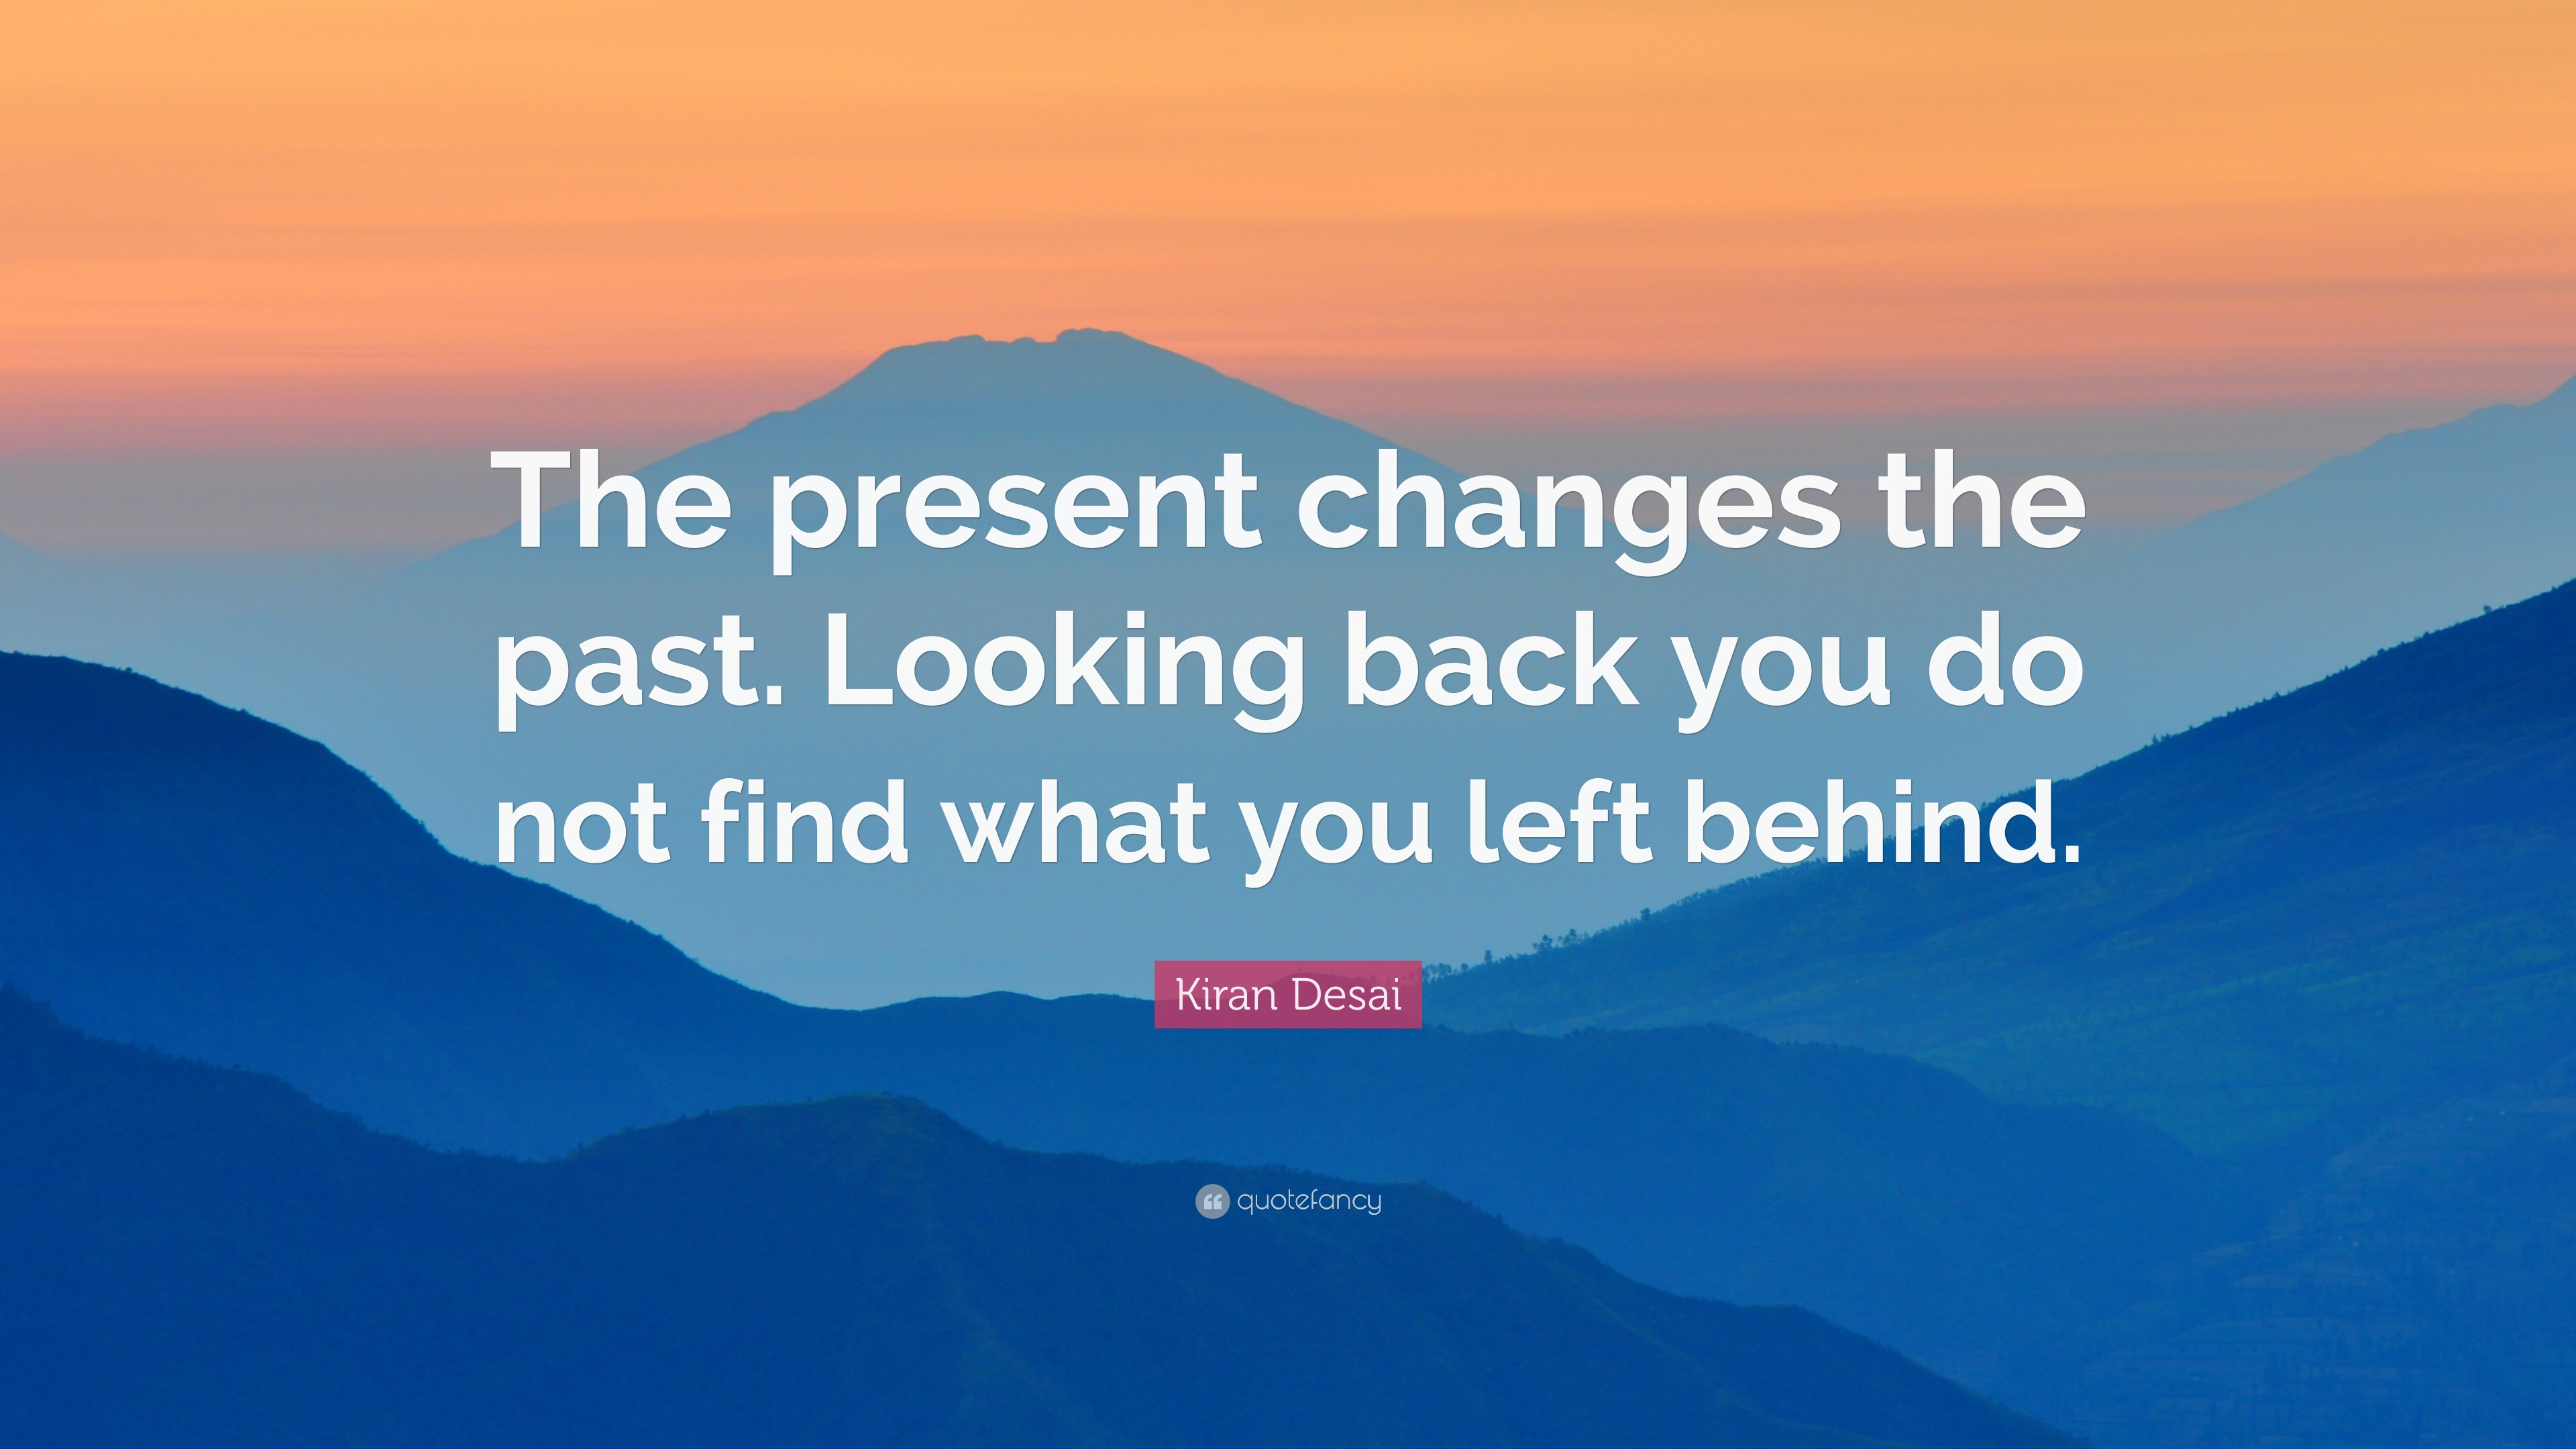 kiran desai quote the present changes the past looking back you